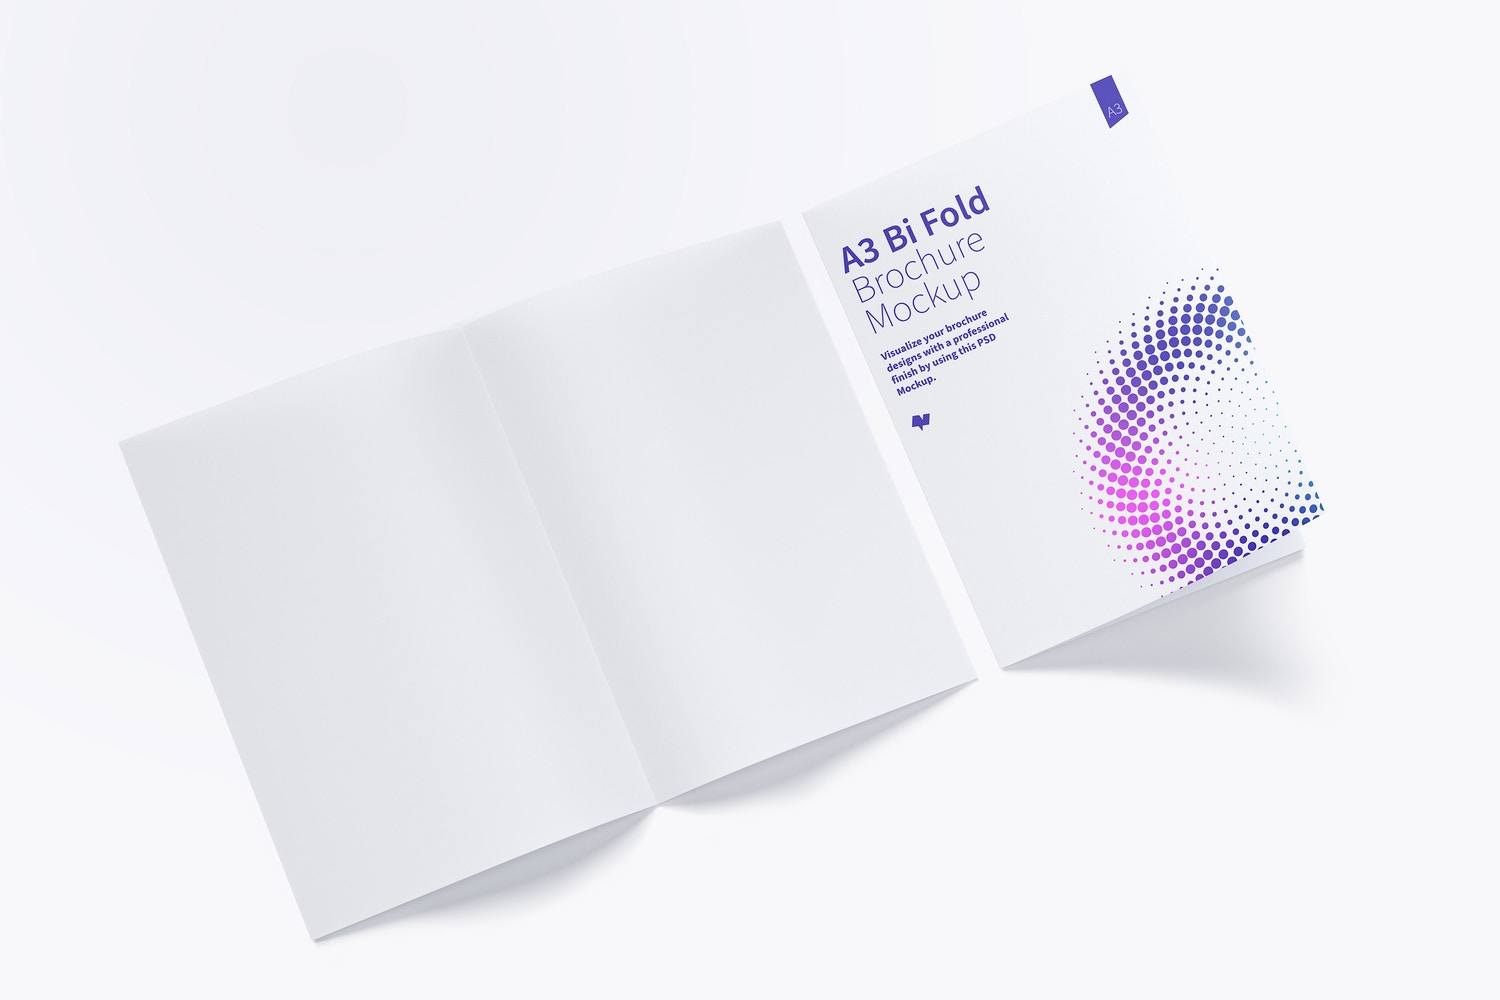 A3 Bi Fold Brochure Mockup 03 by Original Mockups on Original Mockups